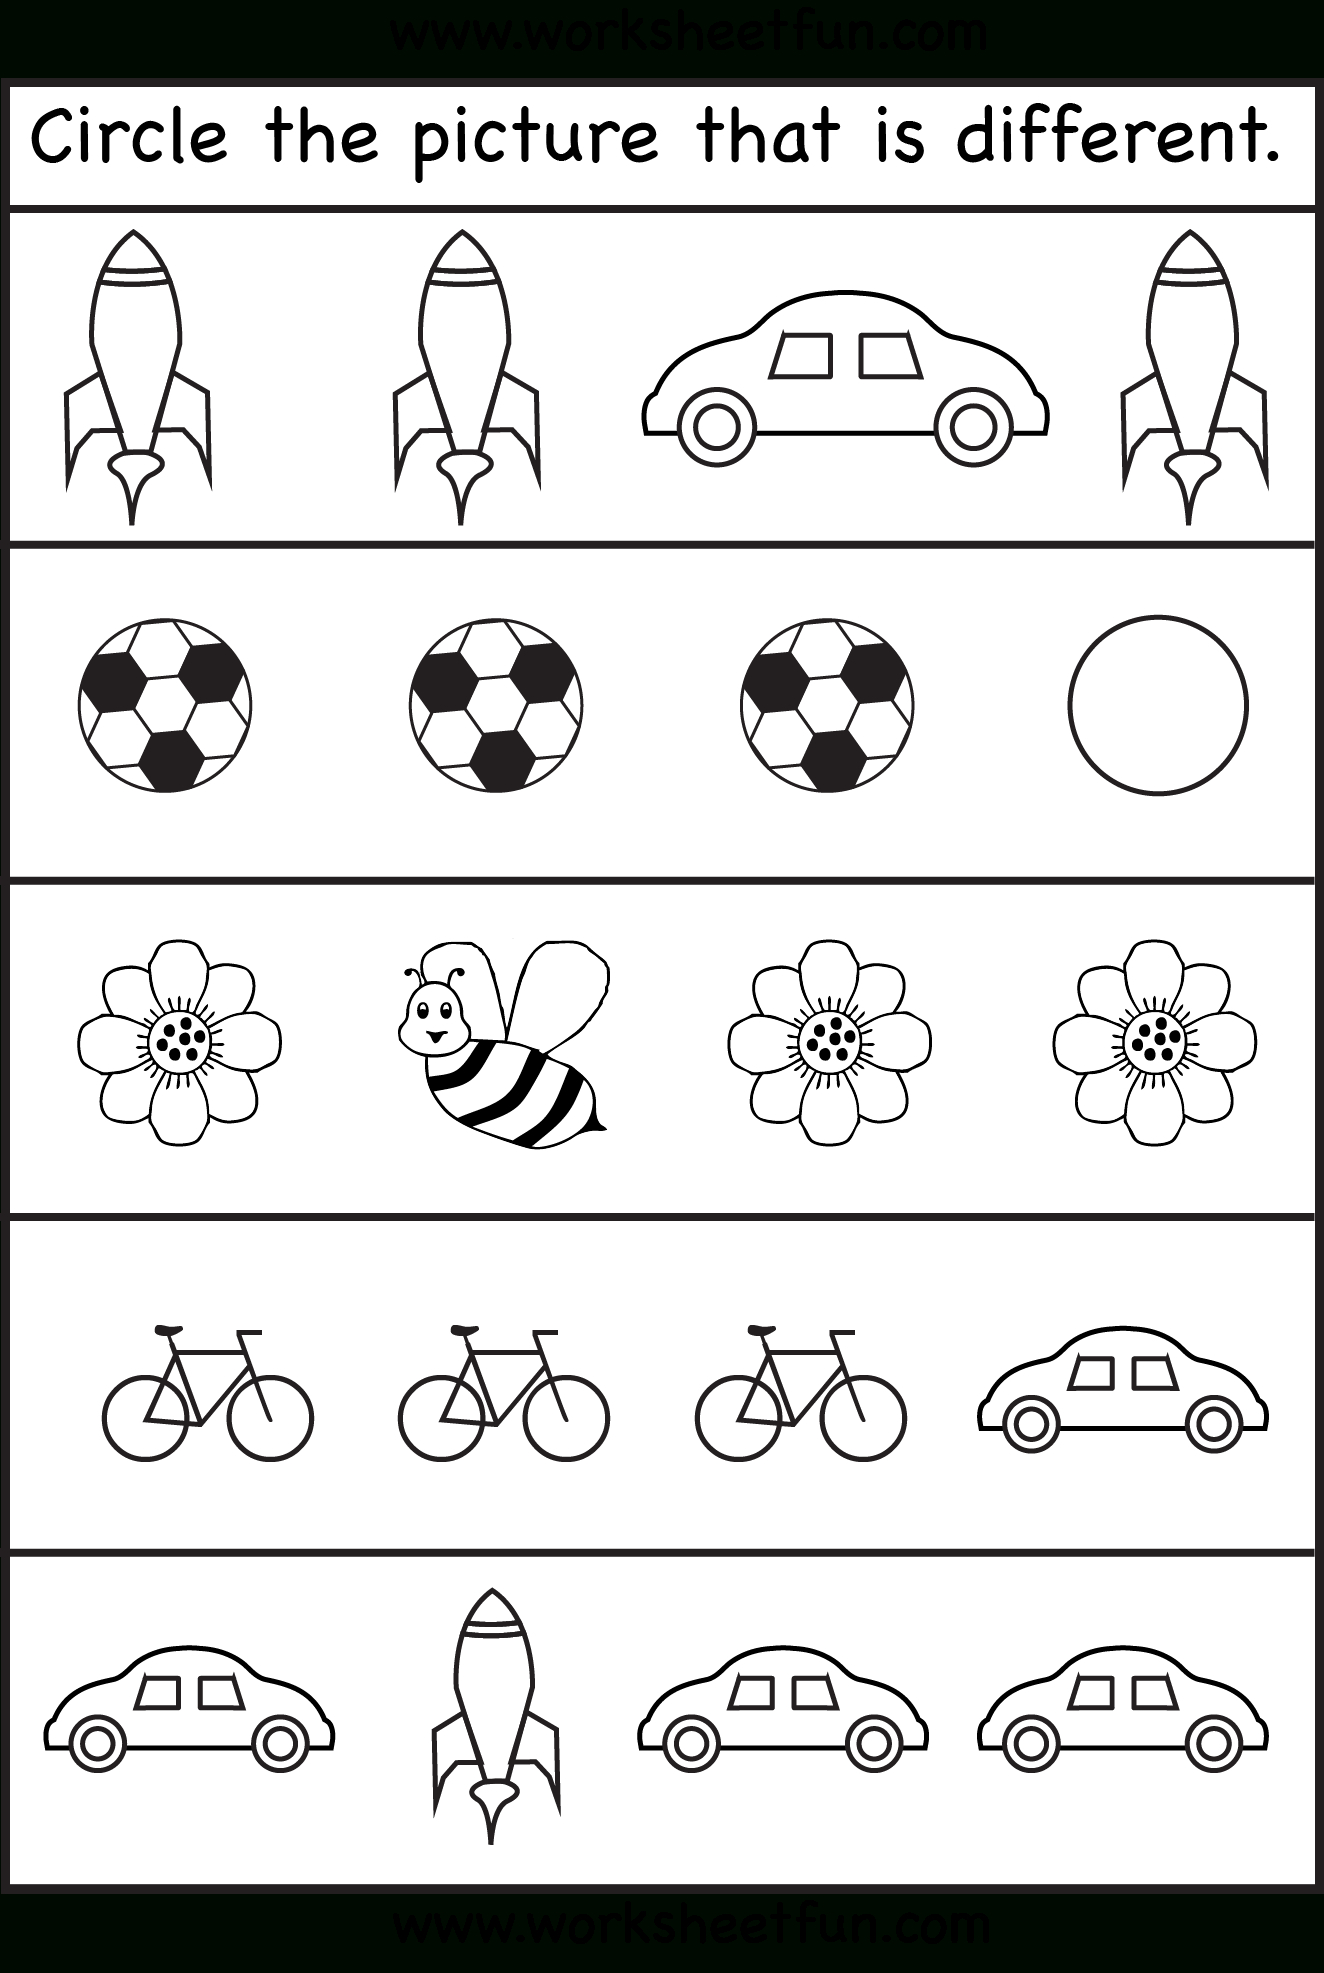 Circle The Picture That Is Different - 4 Worksheets | Printable - Free Printable Same And Different Worksheets